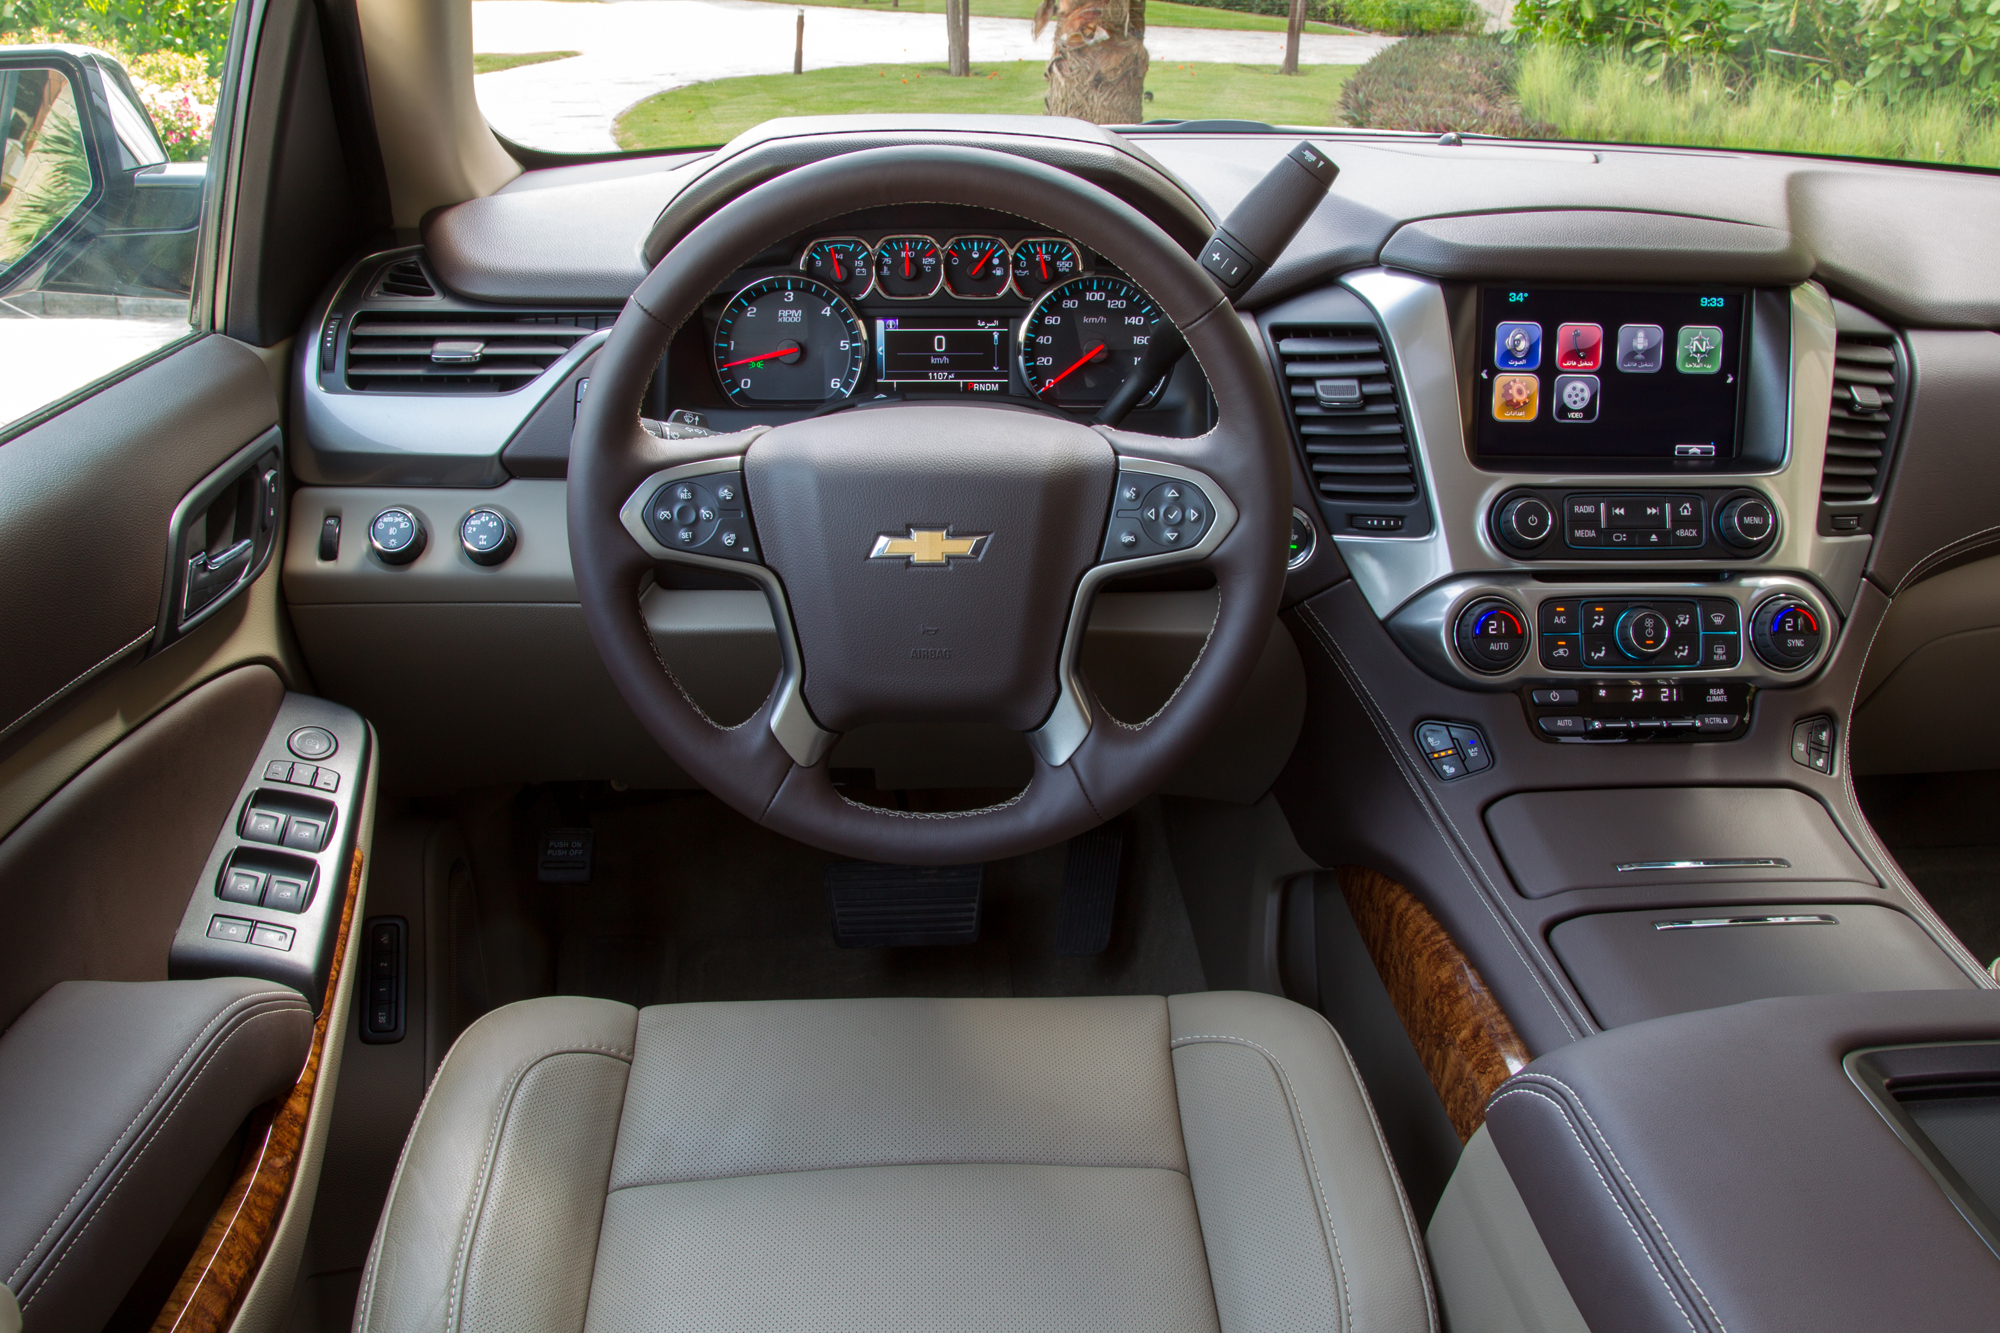 2015 Chevrolet Tahoe Reviewmotoring Middle East Car News Reviews And Buying Guides